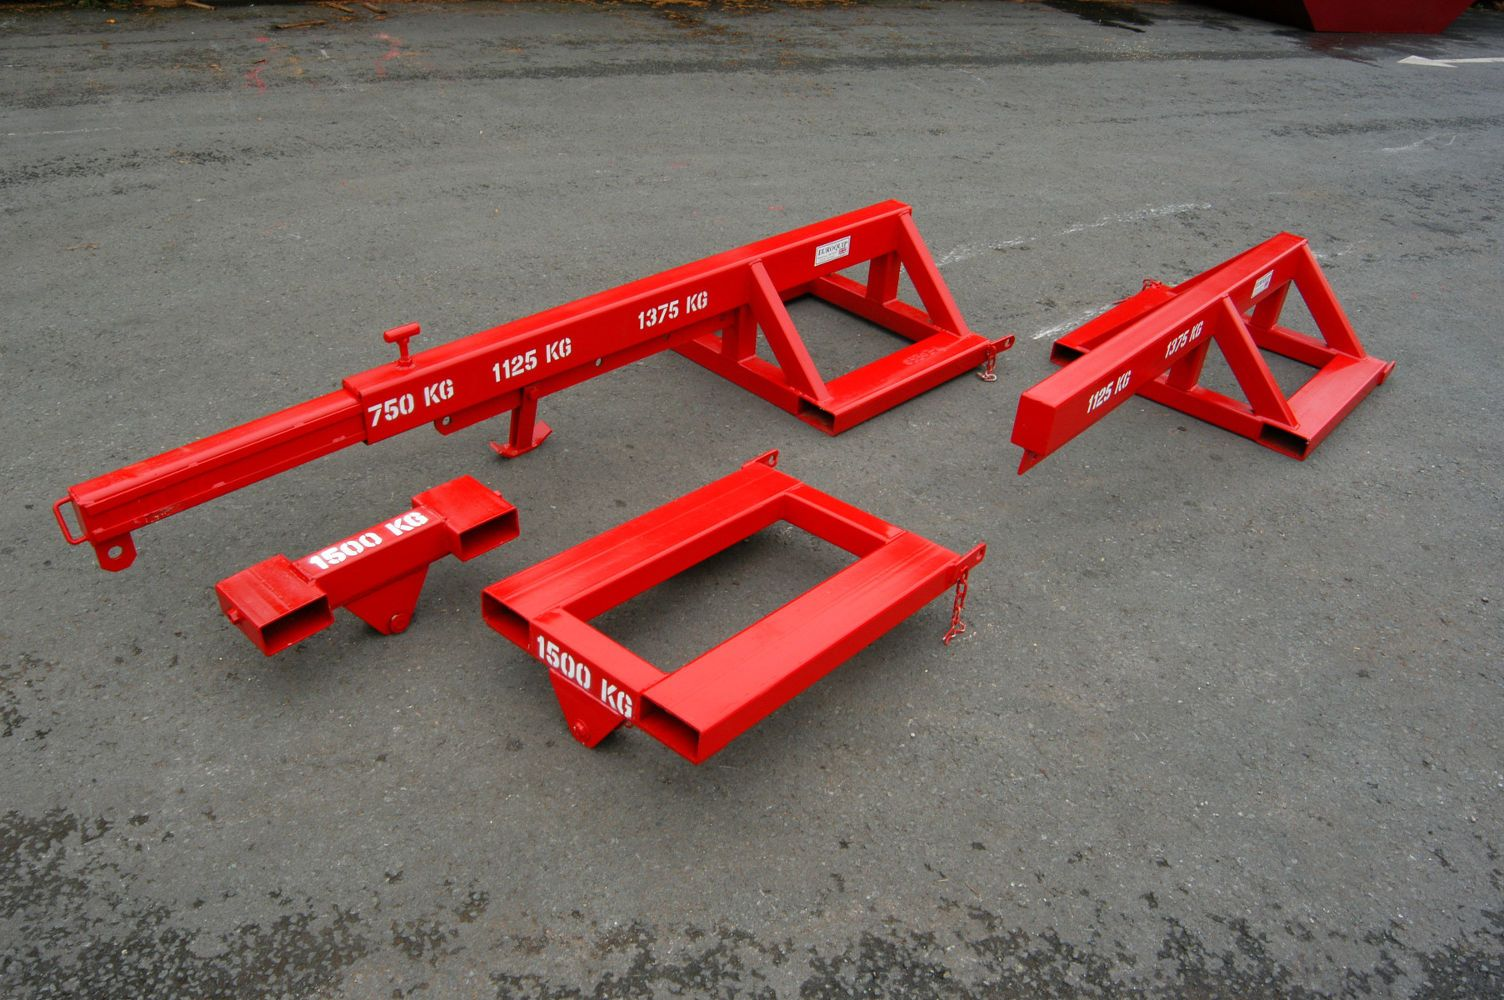 Euroquip's range of Forklift Lifting Jibs